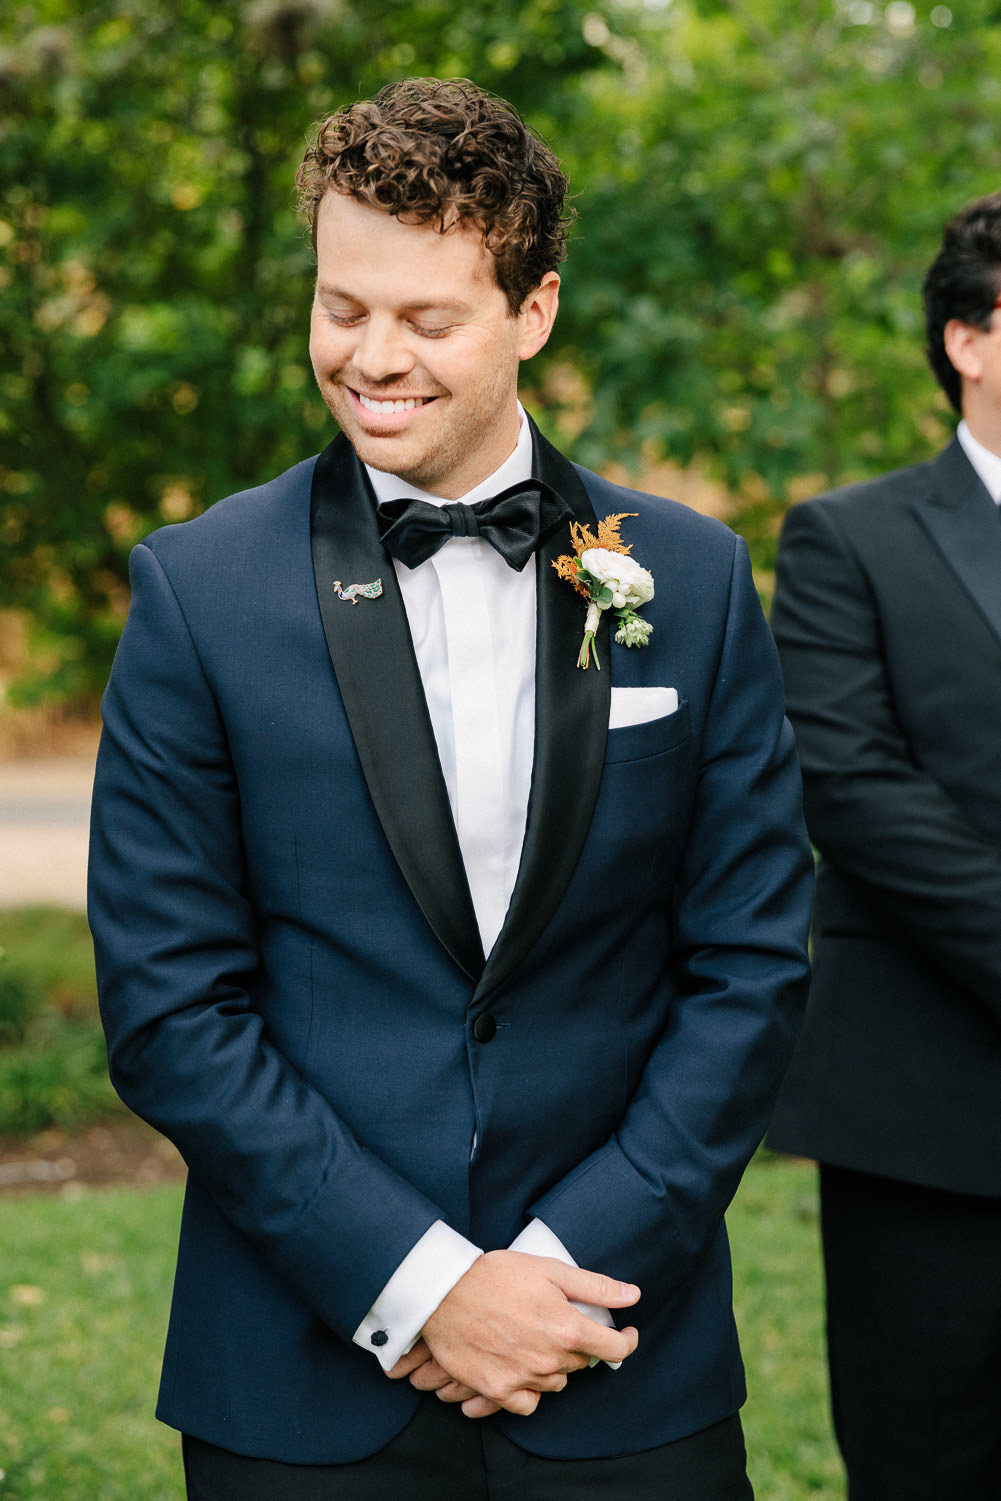 Groom smiling in navy blue tuxedo